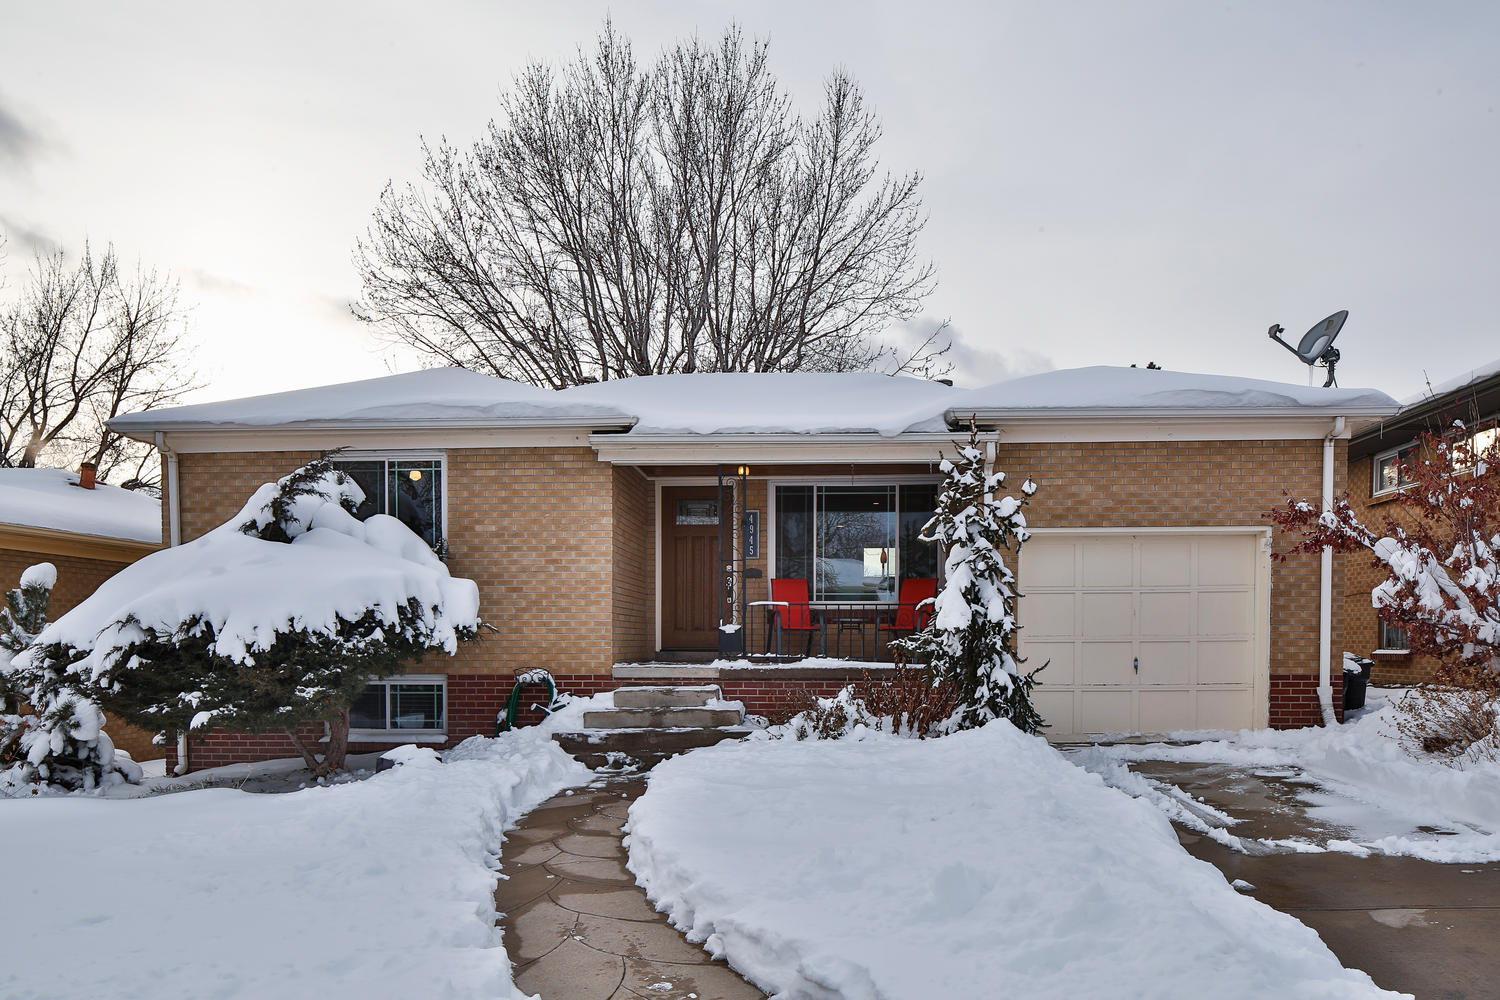 Single Family Home for Sale at Beautifully-remodeled Mid-century Home in Berkeley's Inspiration Park 4945 Fenton Street Berkeley, Denver, Colorado 80212 United States